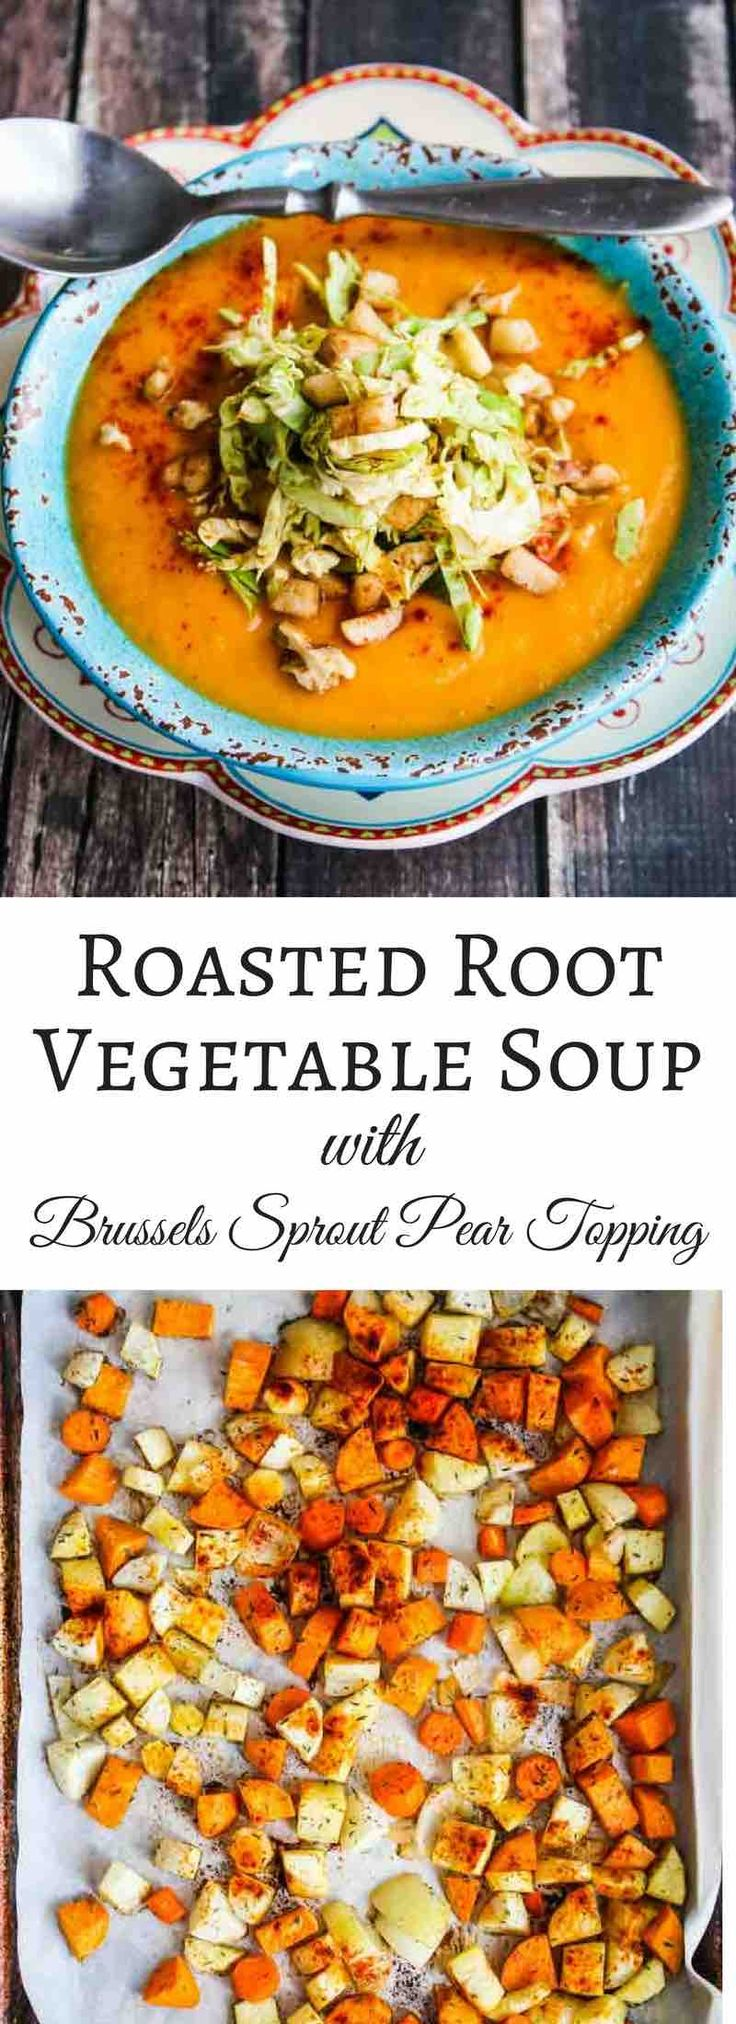 Roasted Root Vegetable Soup with Brussels Sprout Pear Topping - this velvety smooth soup topped with a cool crisp salad is healthy, delicious and vegan: